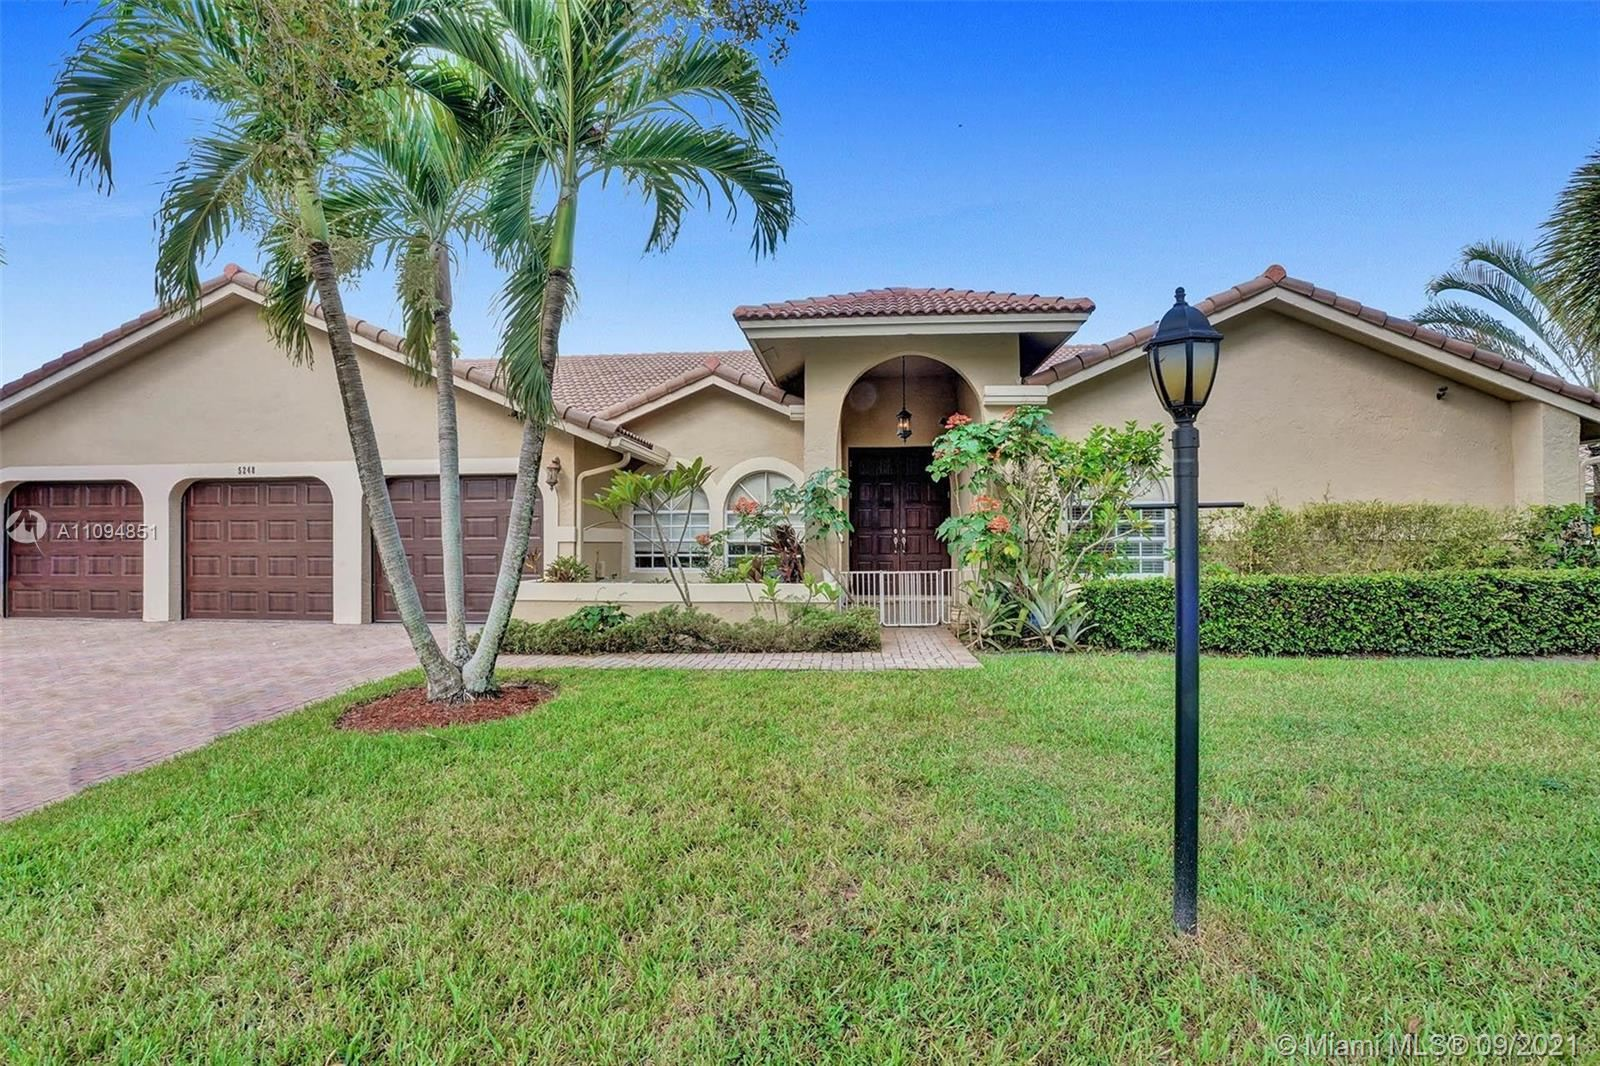 5248 NW 89th Dr, Coral Springs, FL 33067 - #: A11094851